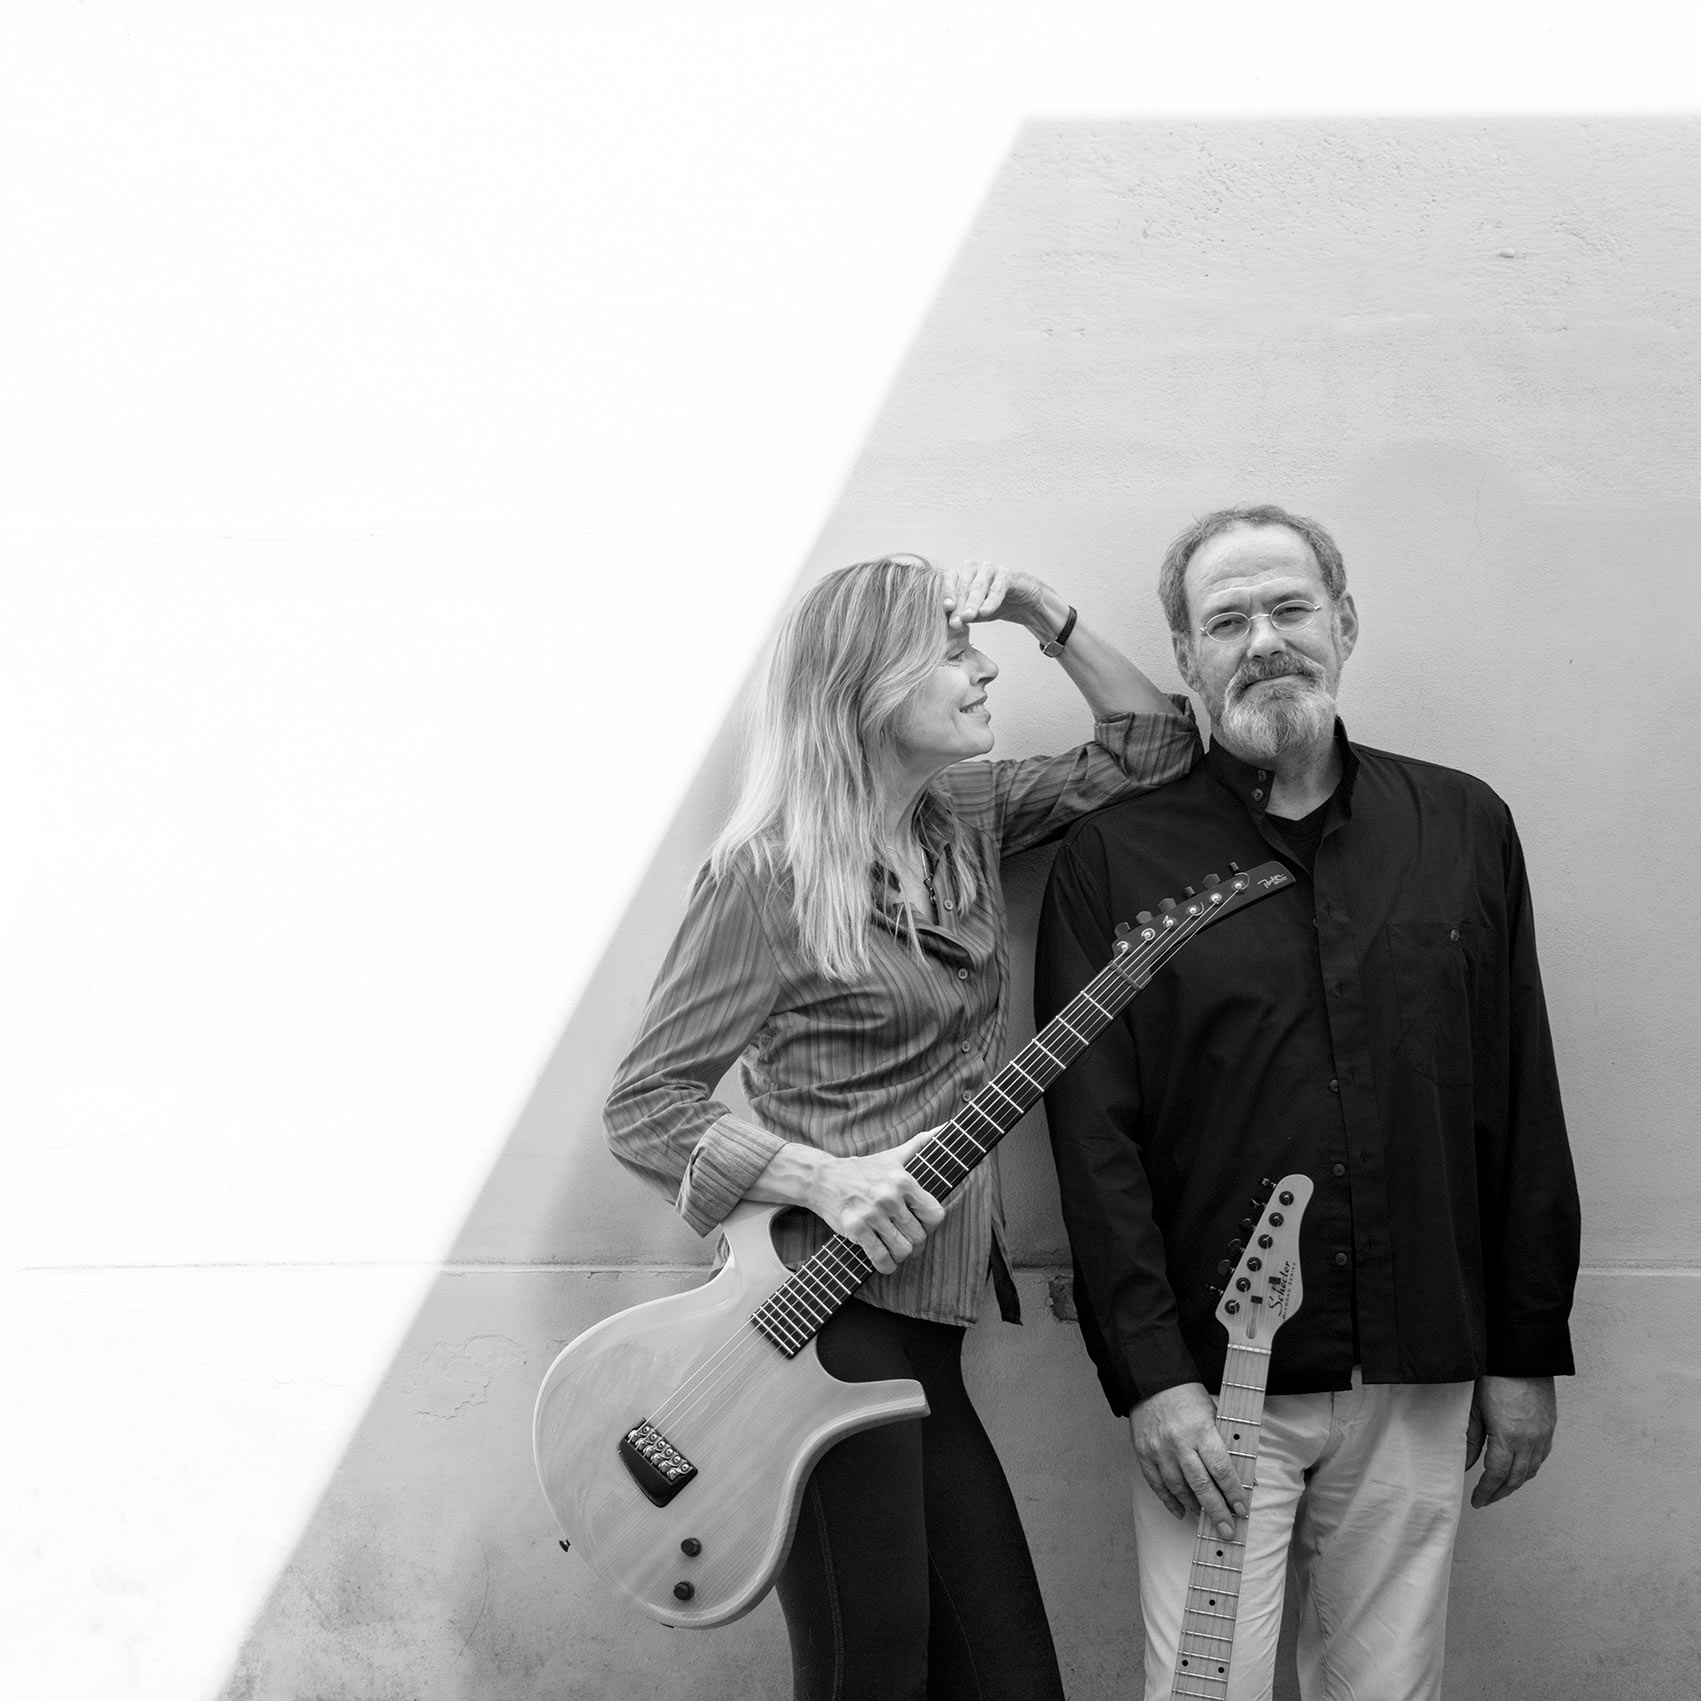 Songs & Sounds – B&W Elisabeth Cutler with guitarist Leander Reininghaus